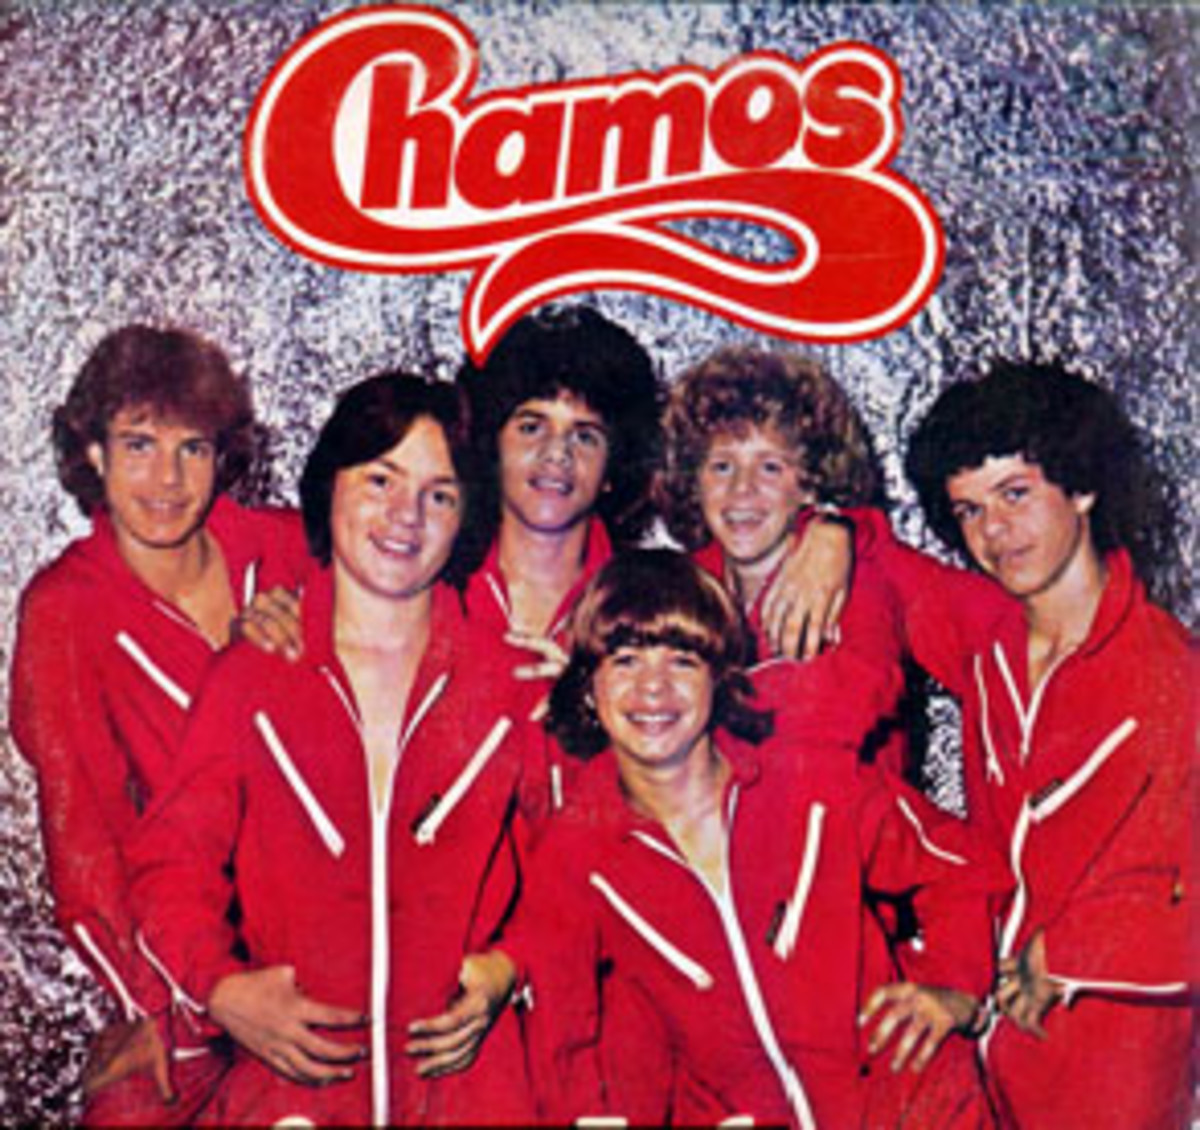 "Los Chamos second studio album released in 1982. It contains the hit song ""Canta Chamo"" (Cover of Crazy Song)."